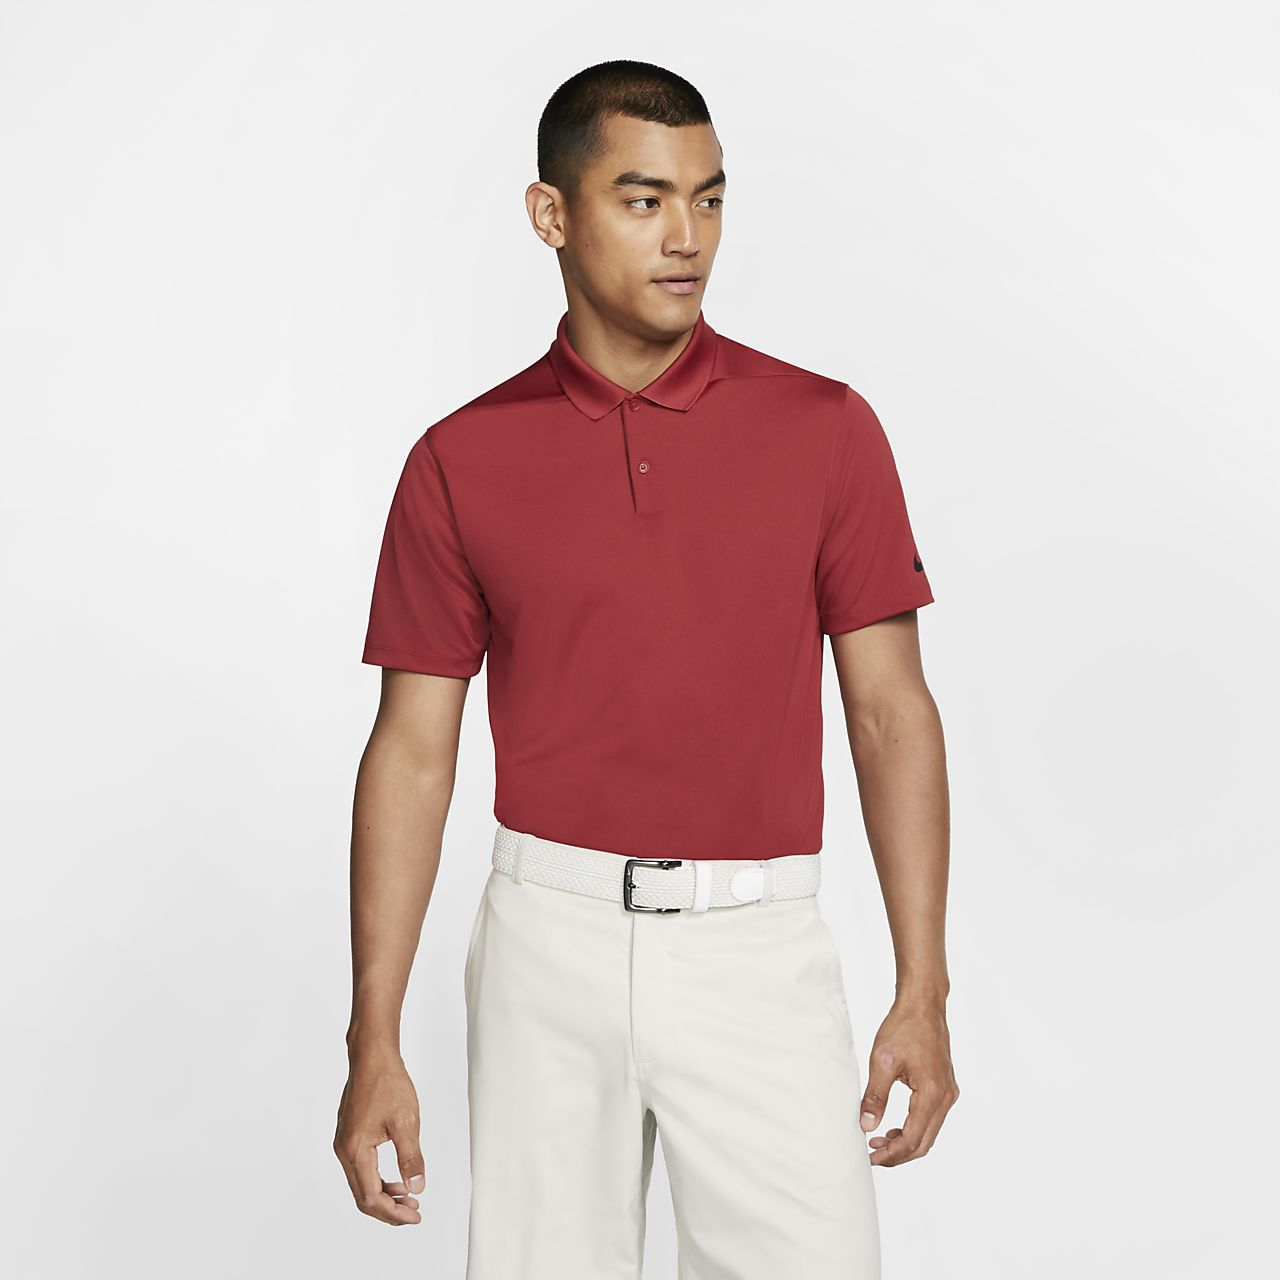 100% authentic 1cd33 5aa7a Men s Golf Polo. Nike Dri-FIT Victory